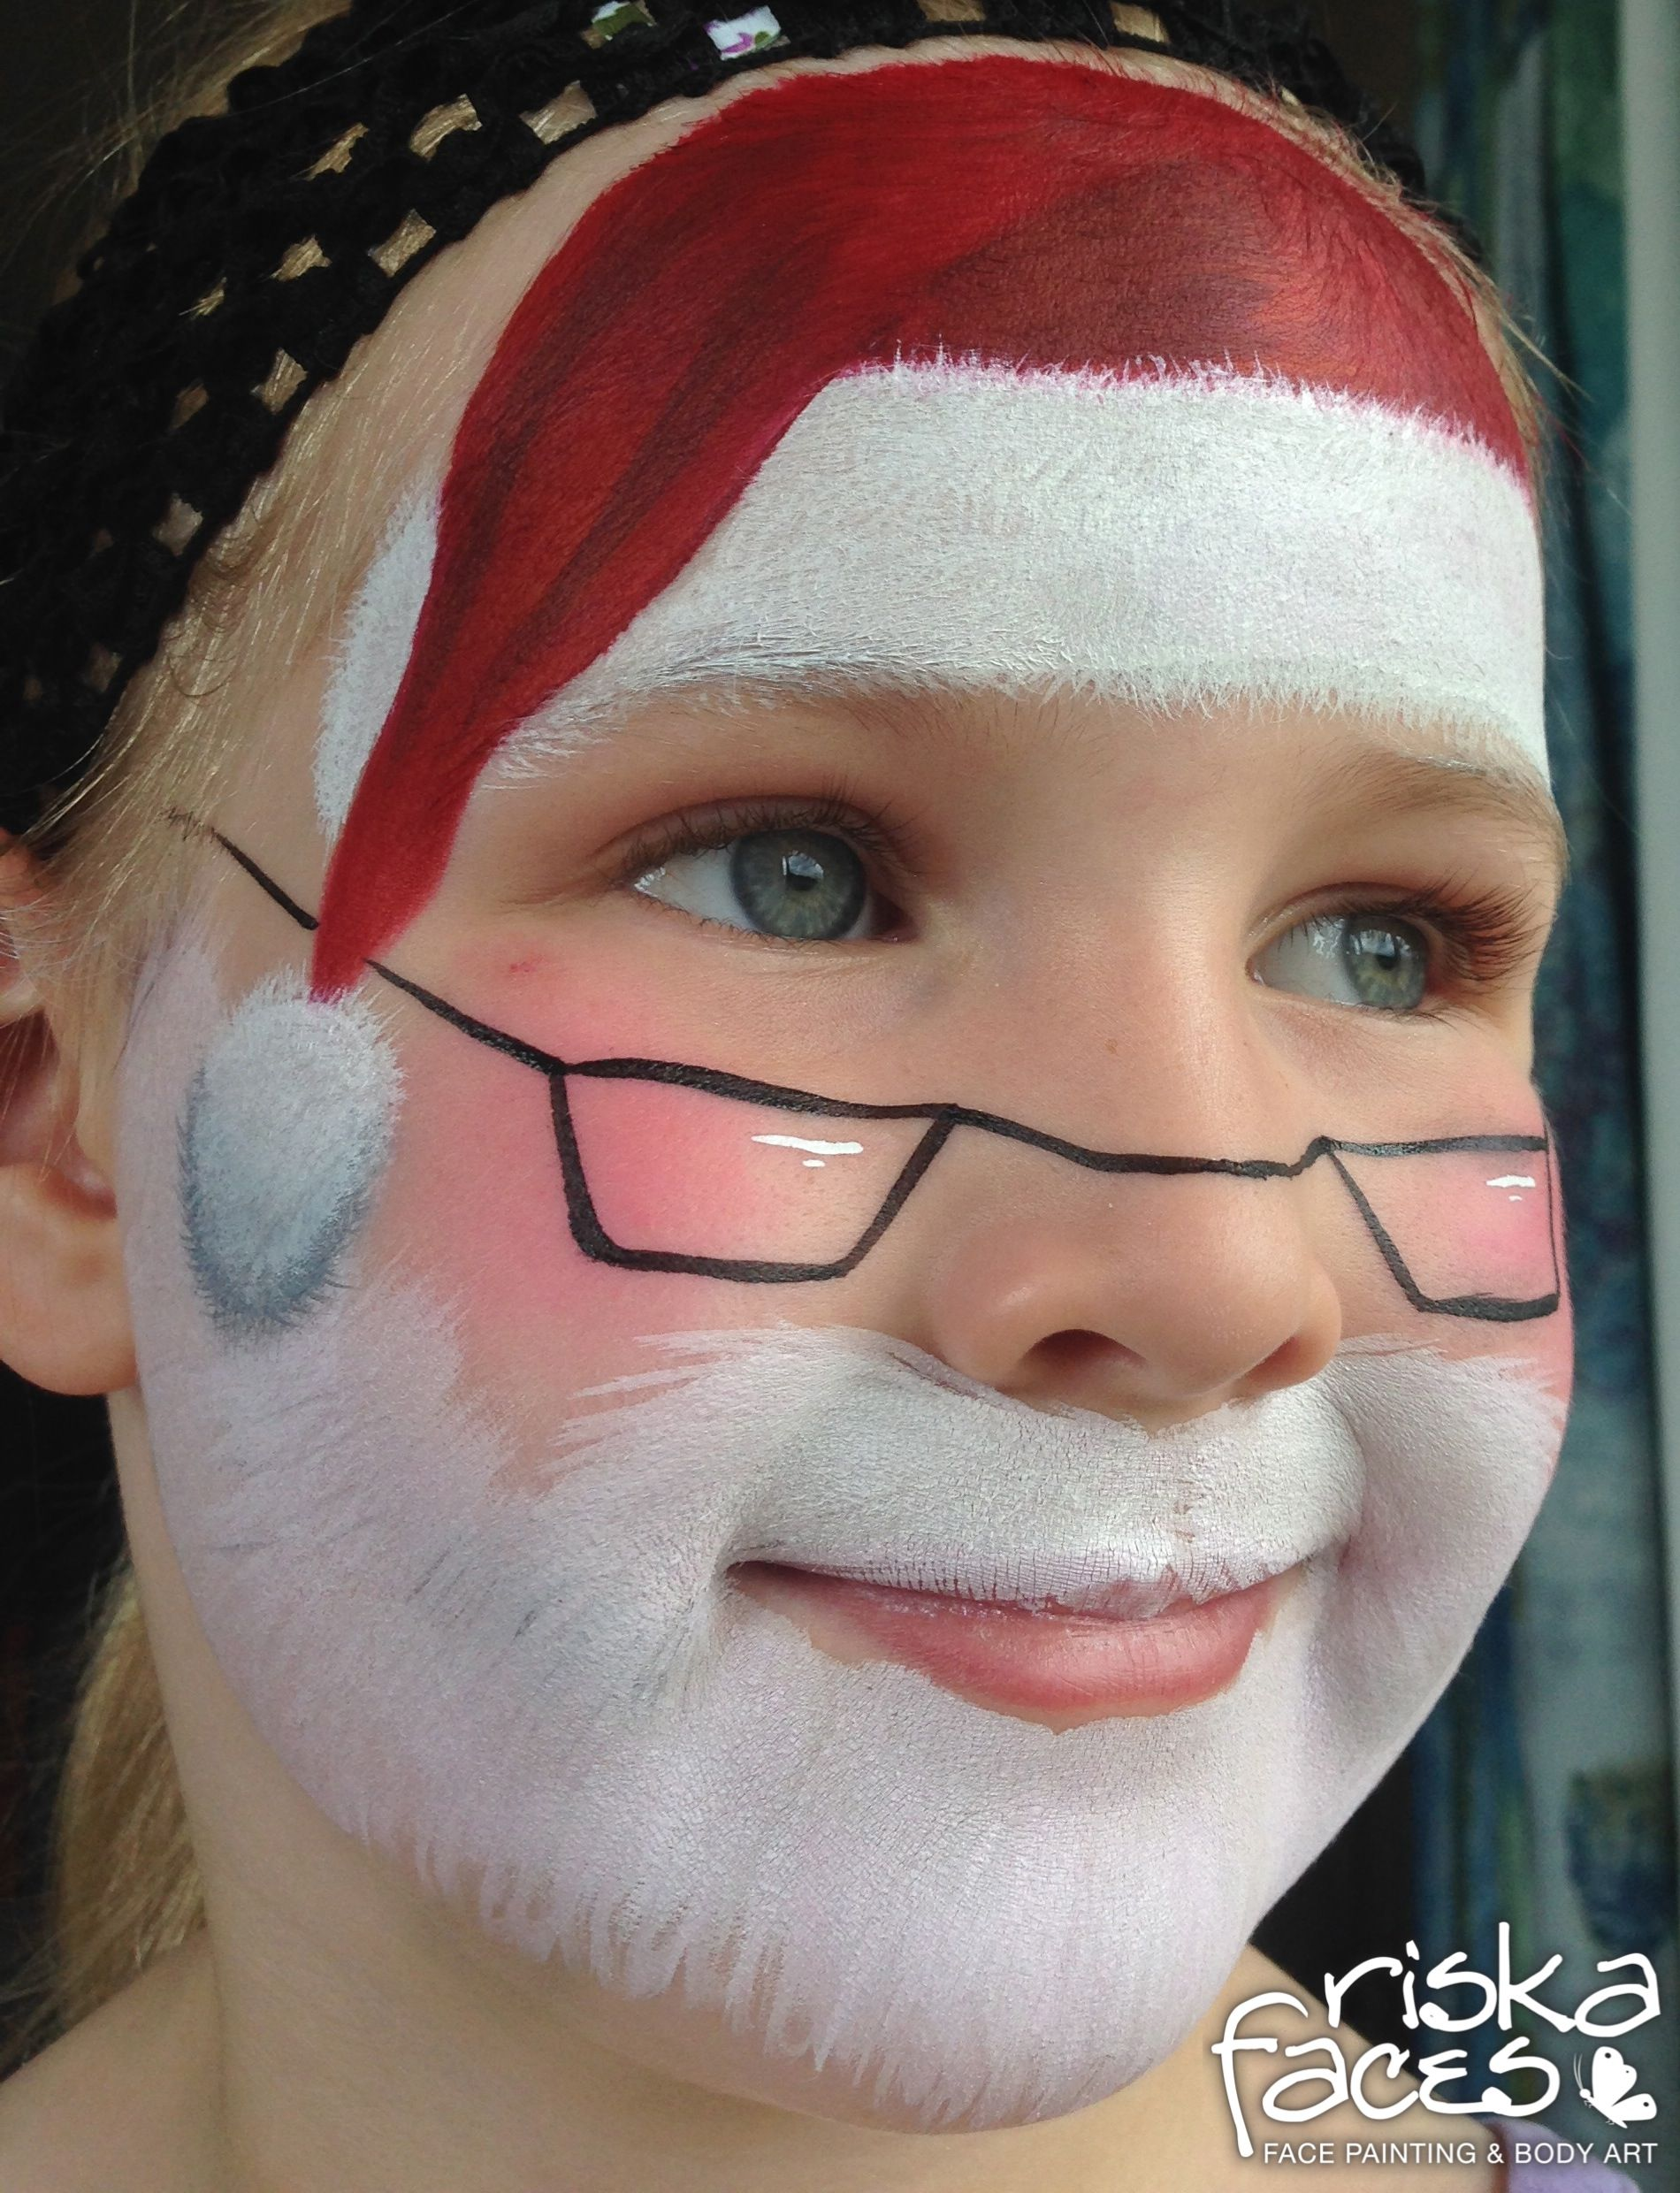 Painted by Riska Faces NZ Christmas face painting, Face